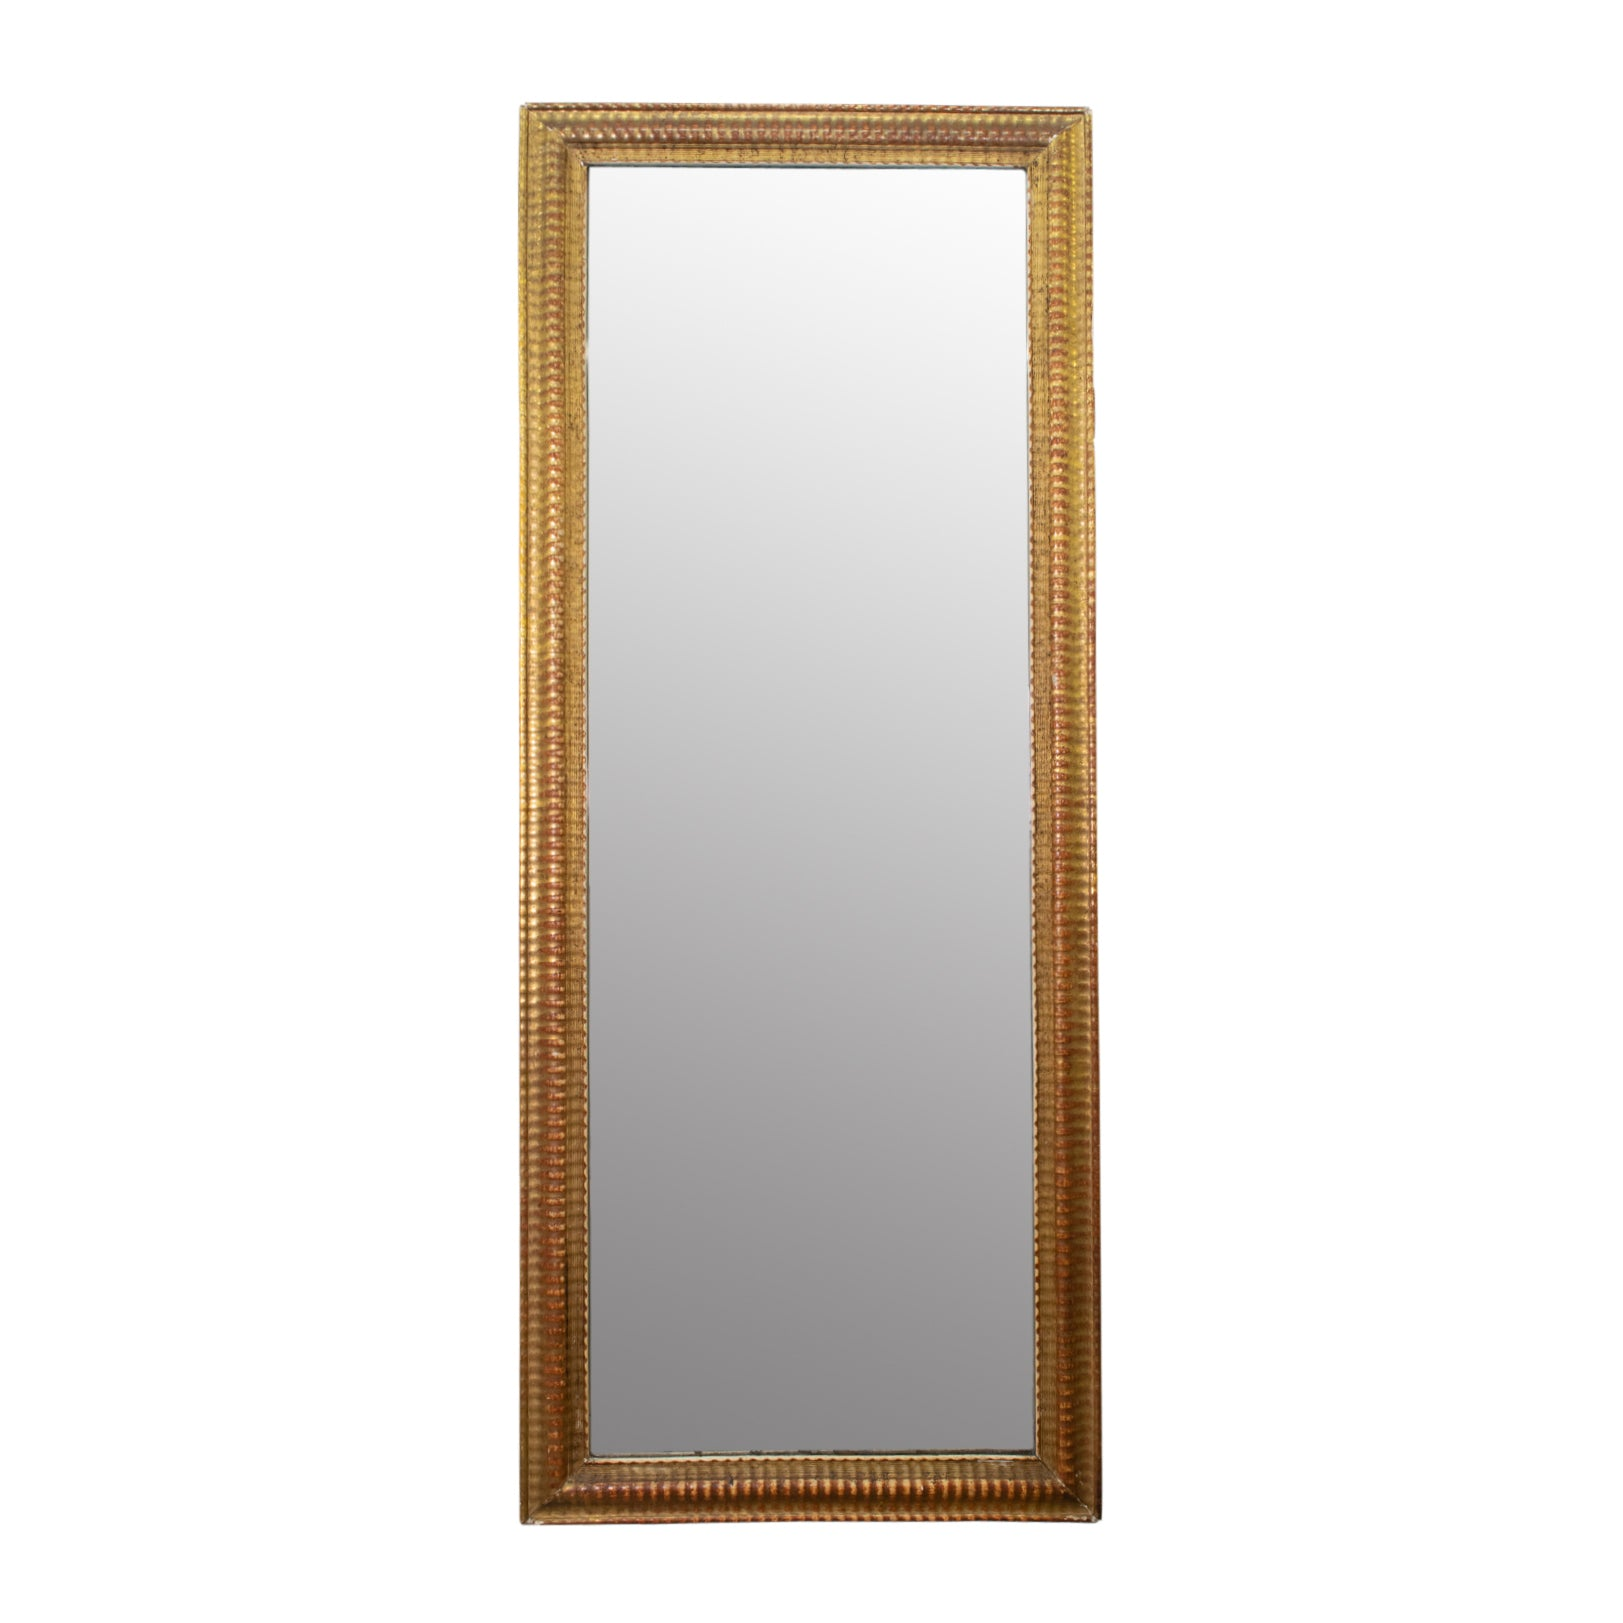 Napoleon III Giltwood Rippled Rectangular Mirror